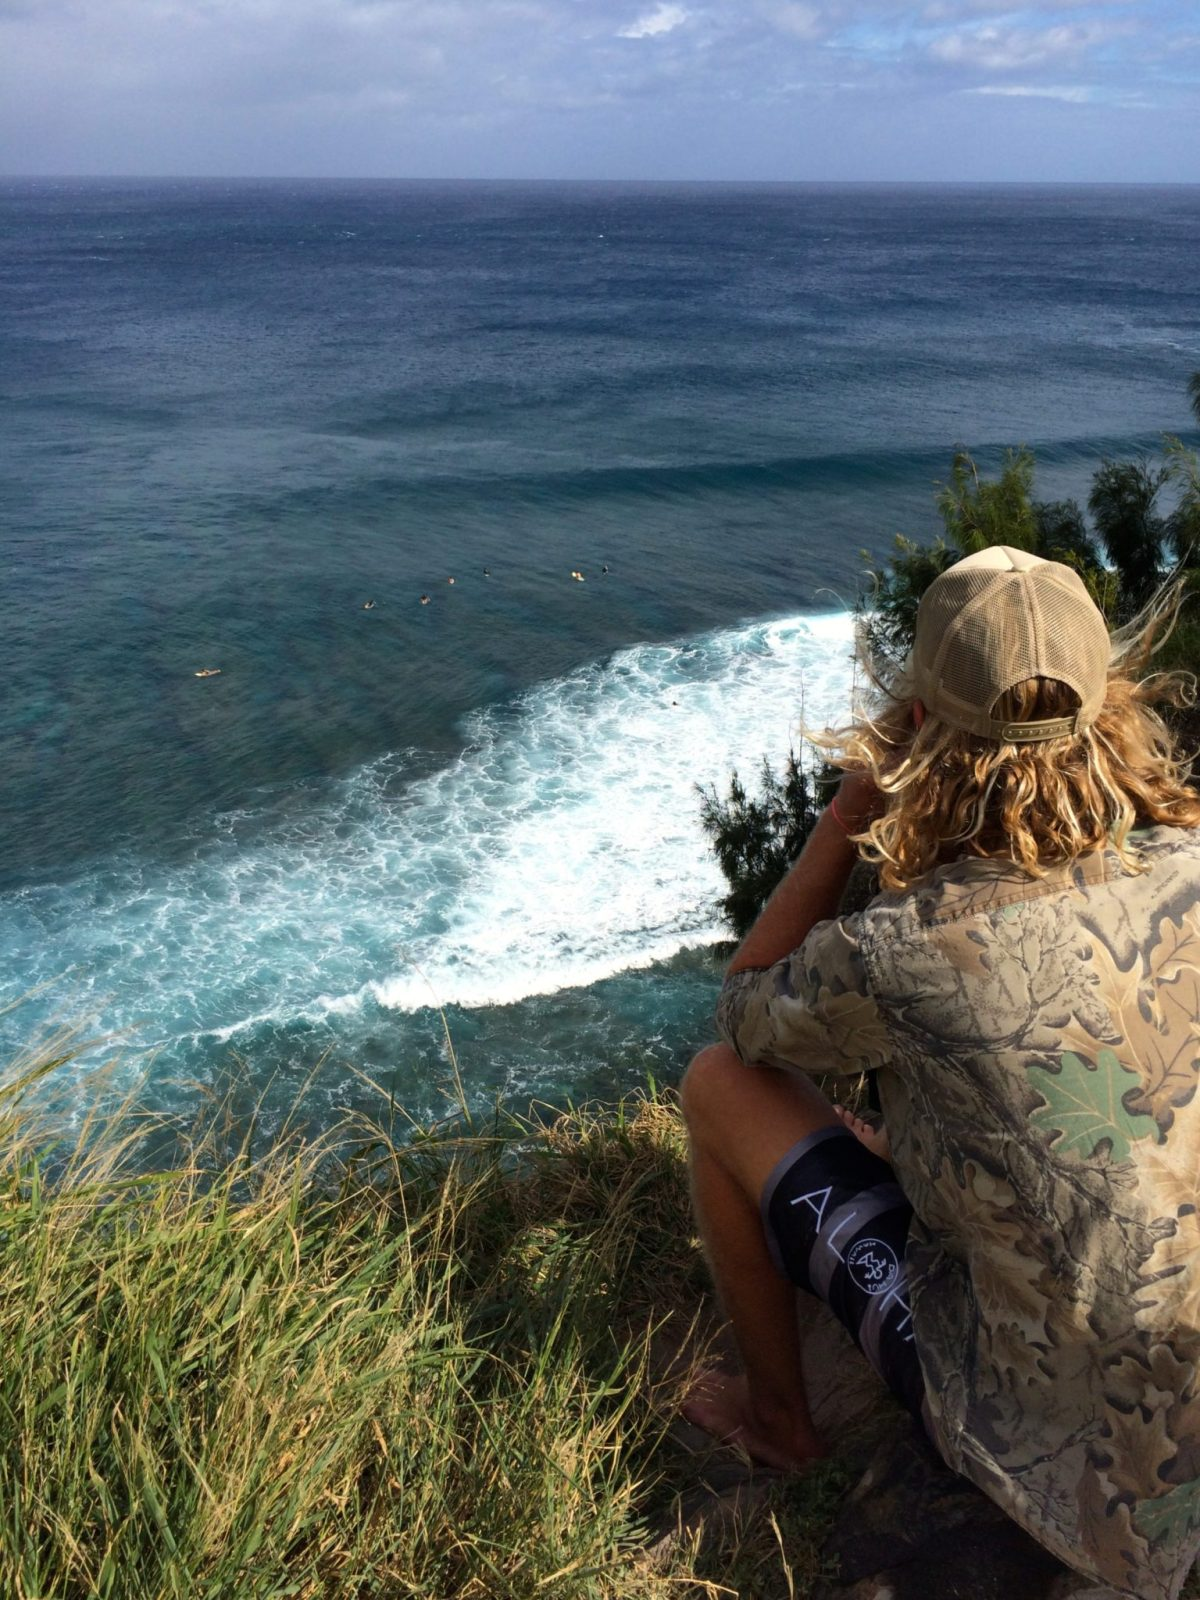 A surfer watching surfers at Honolua Bay, Maui.